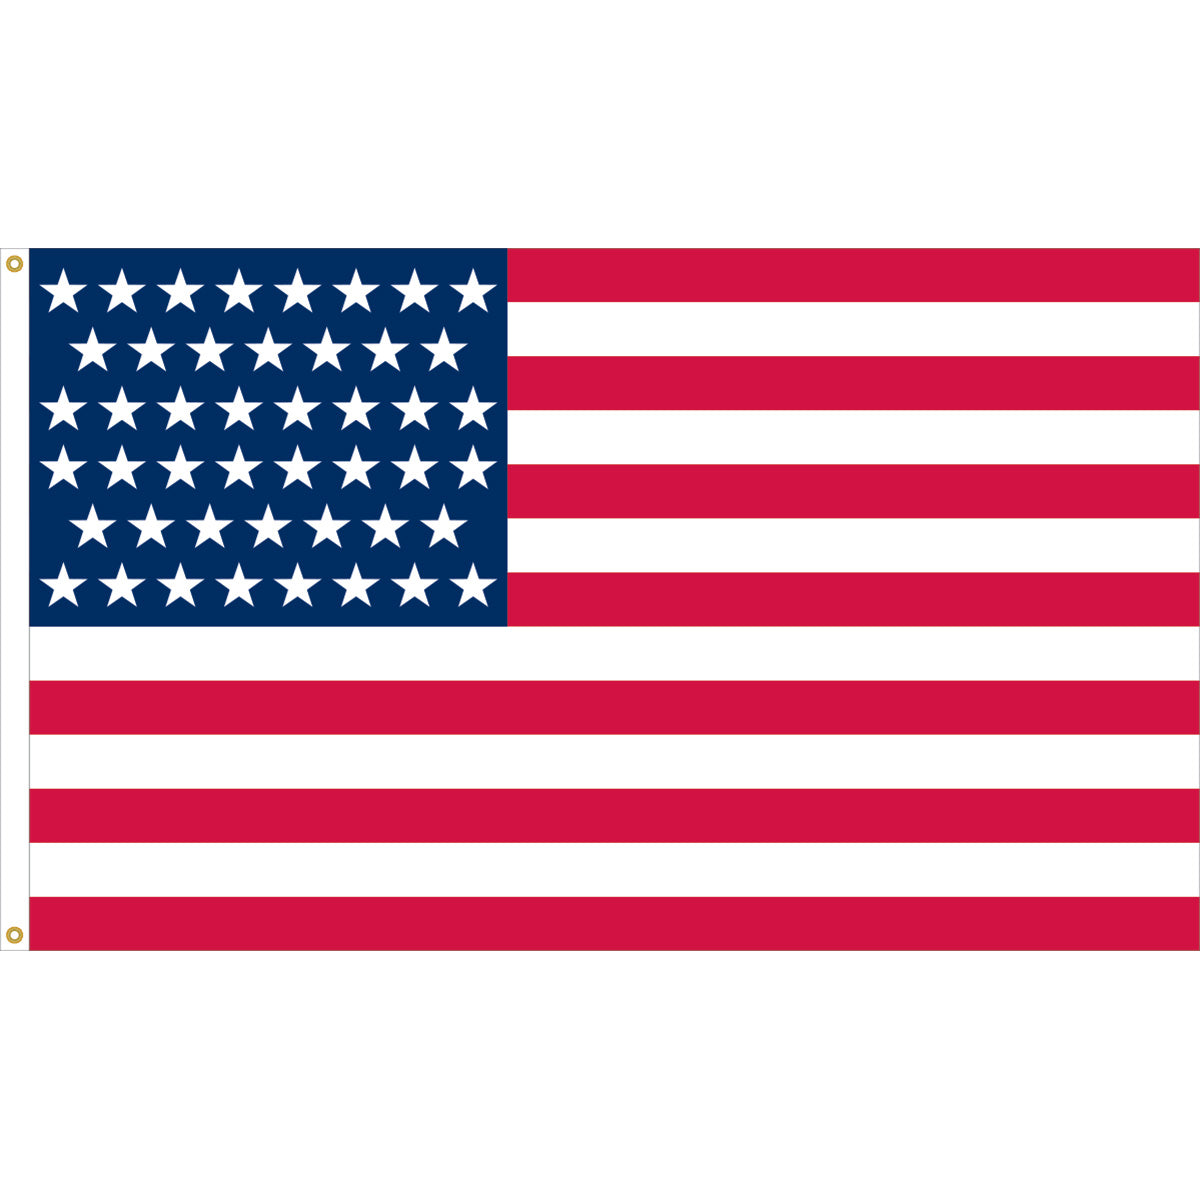 Load image into Gallery viewer, 4x6 26 Star Historical Nylon Flag